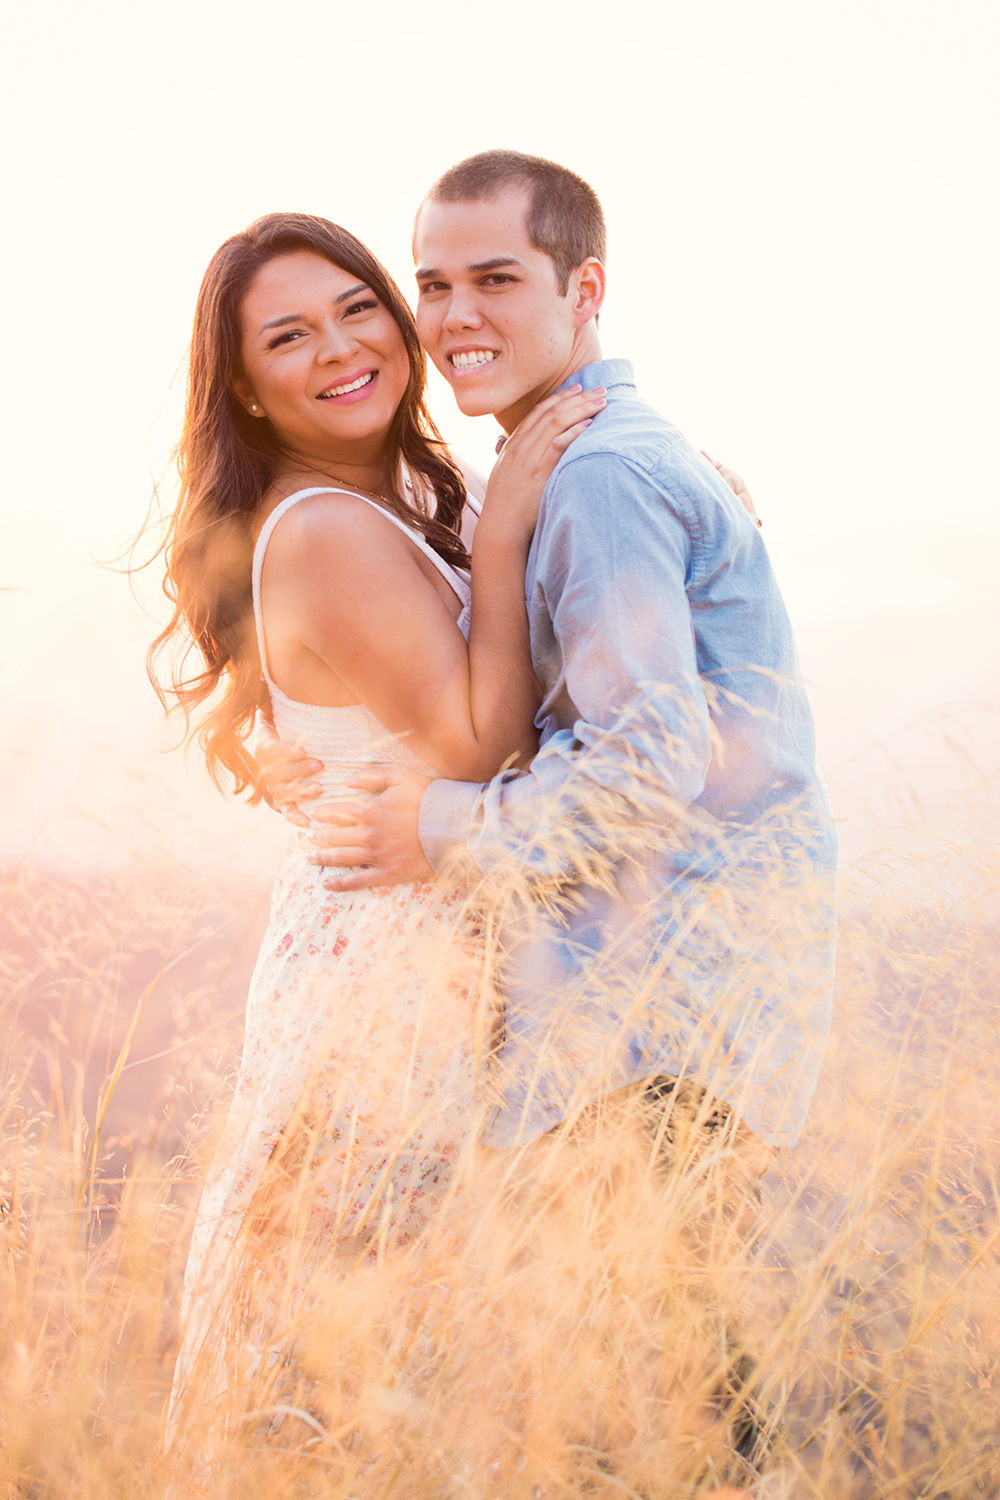 SabrinaAndrewEngagement_Website_24_1500.jpg